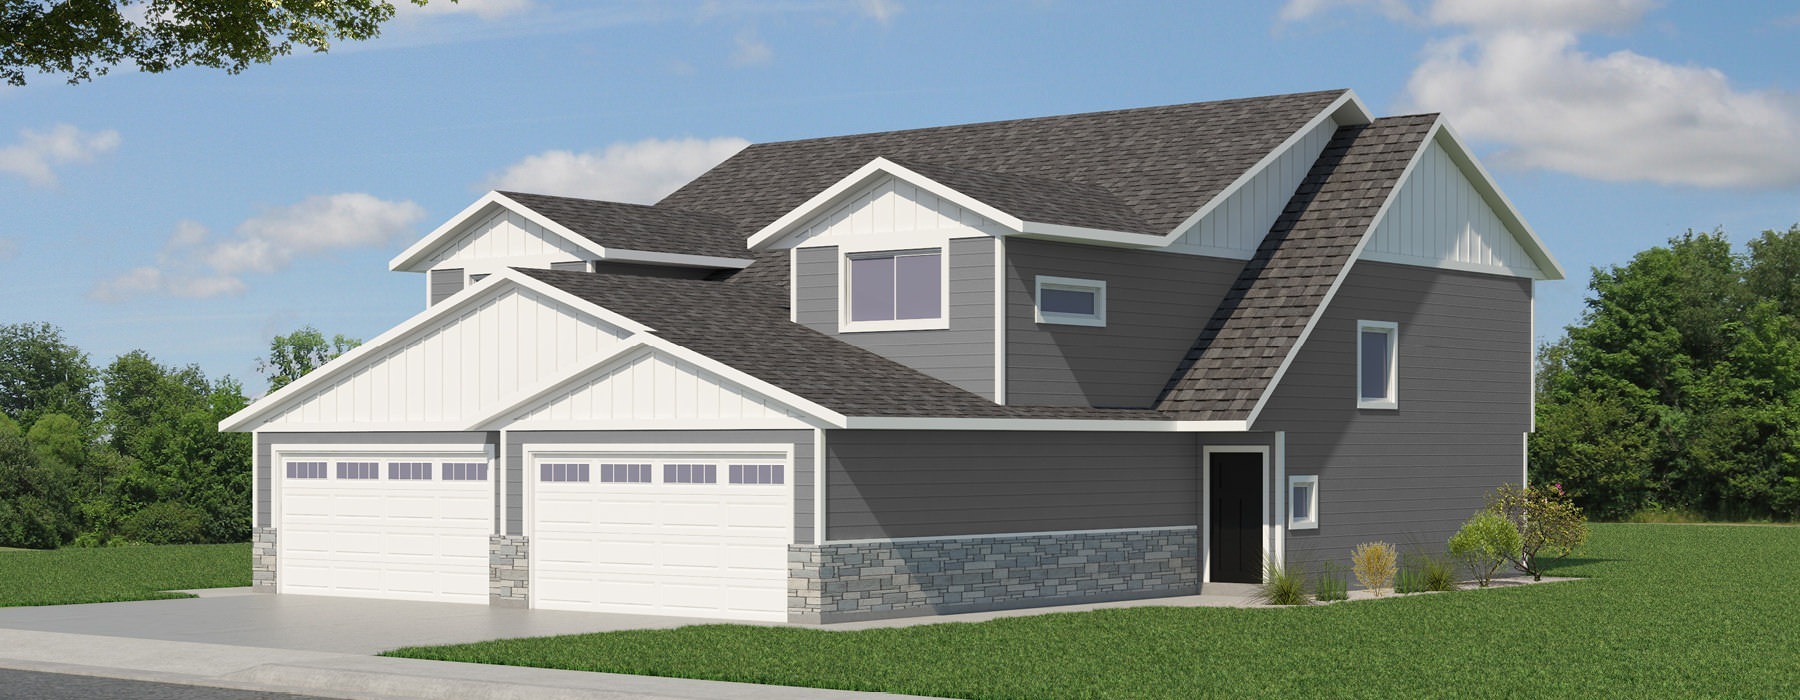 exterior rendering of Arbor Trails Townhome